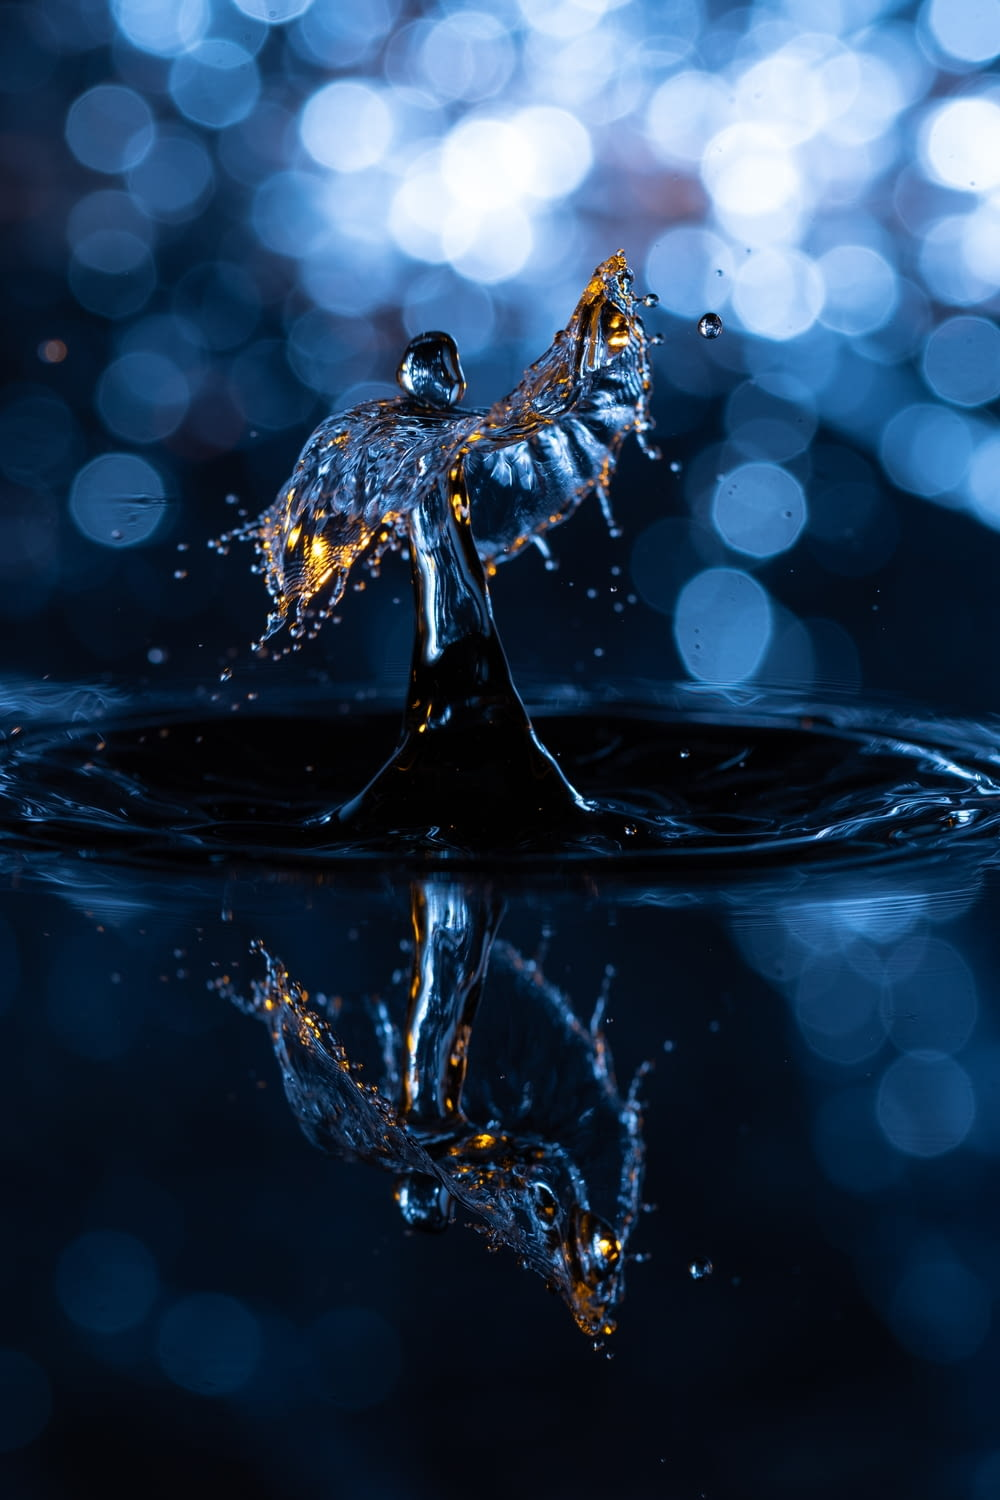 water drop on water in close up photography